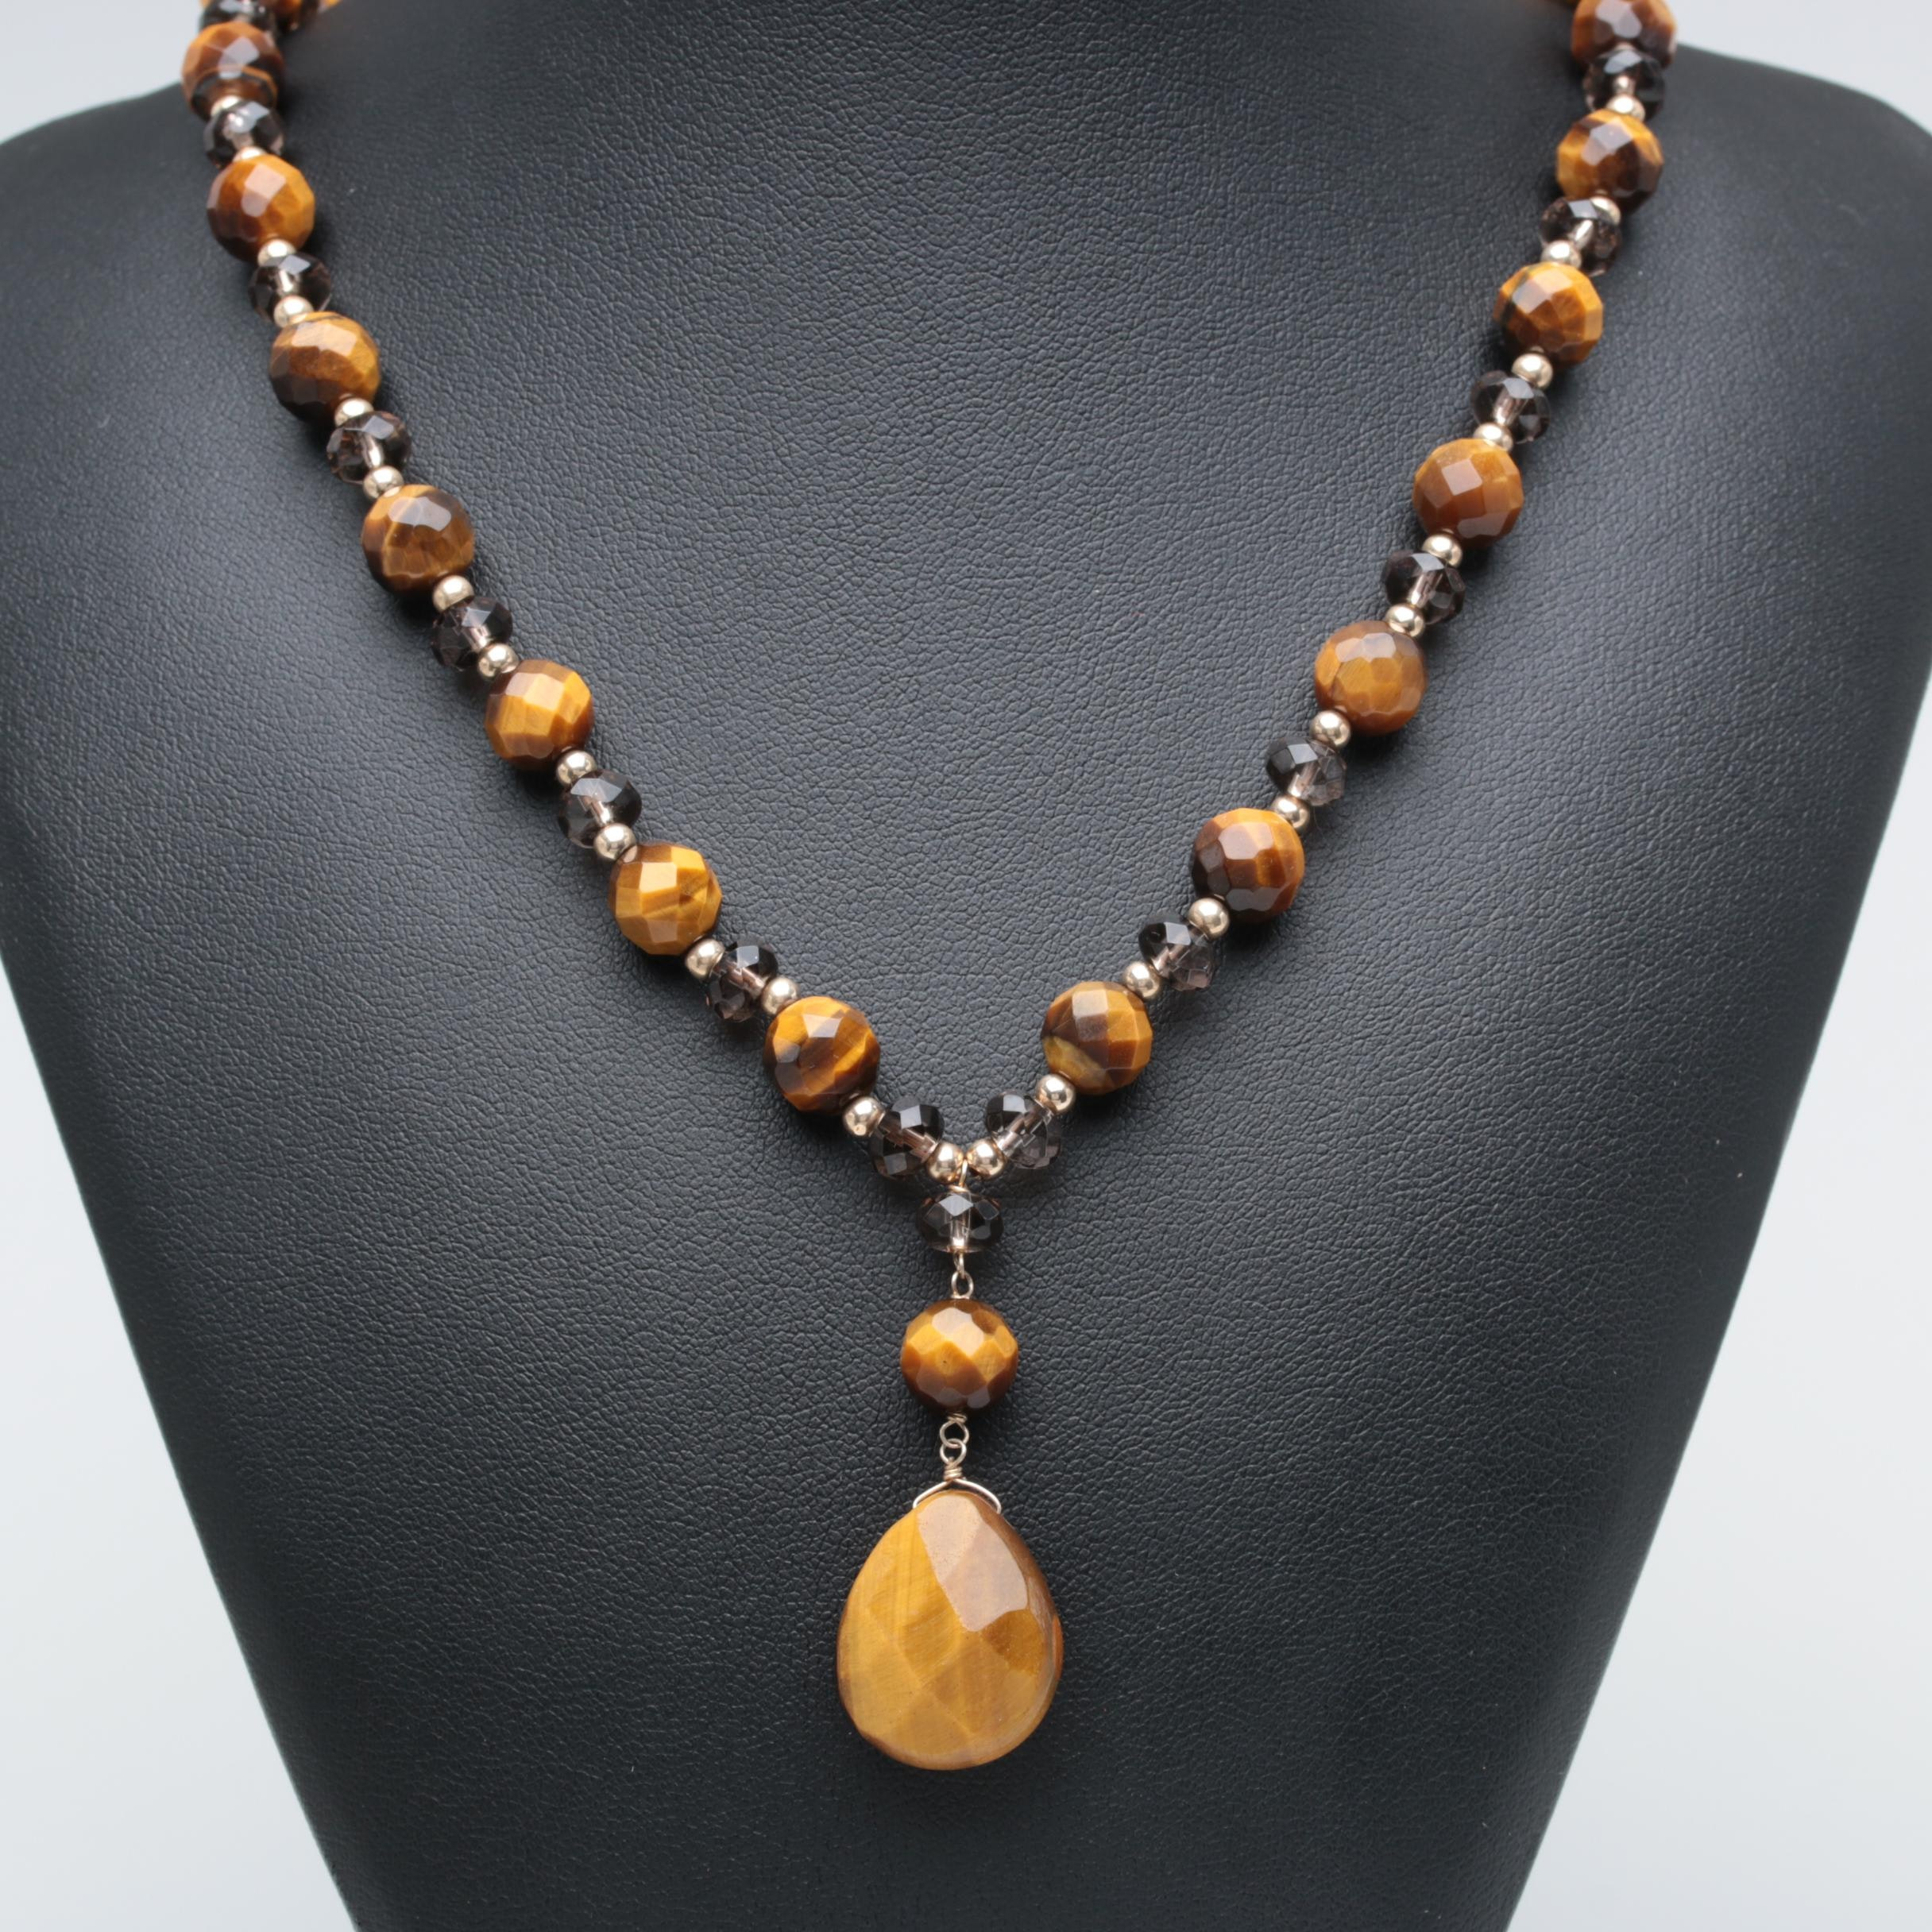 10K Yellow Gold Tiger's Eye and Smoky Quartz Necklace